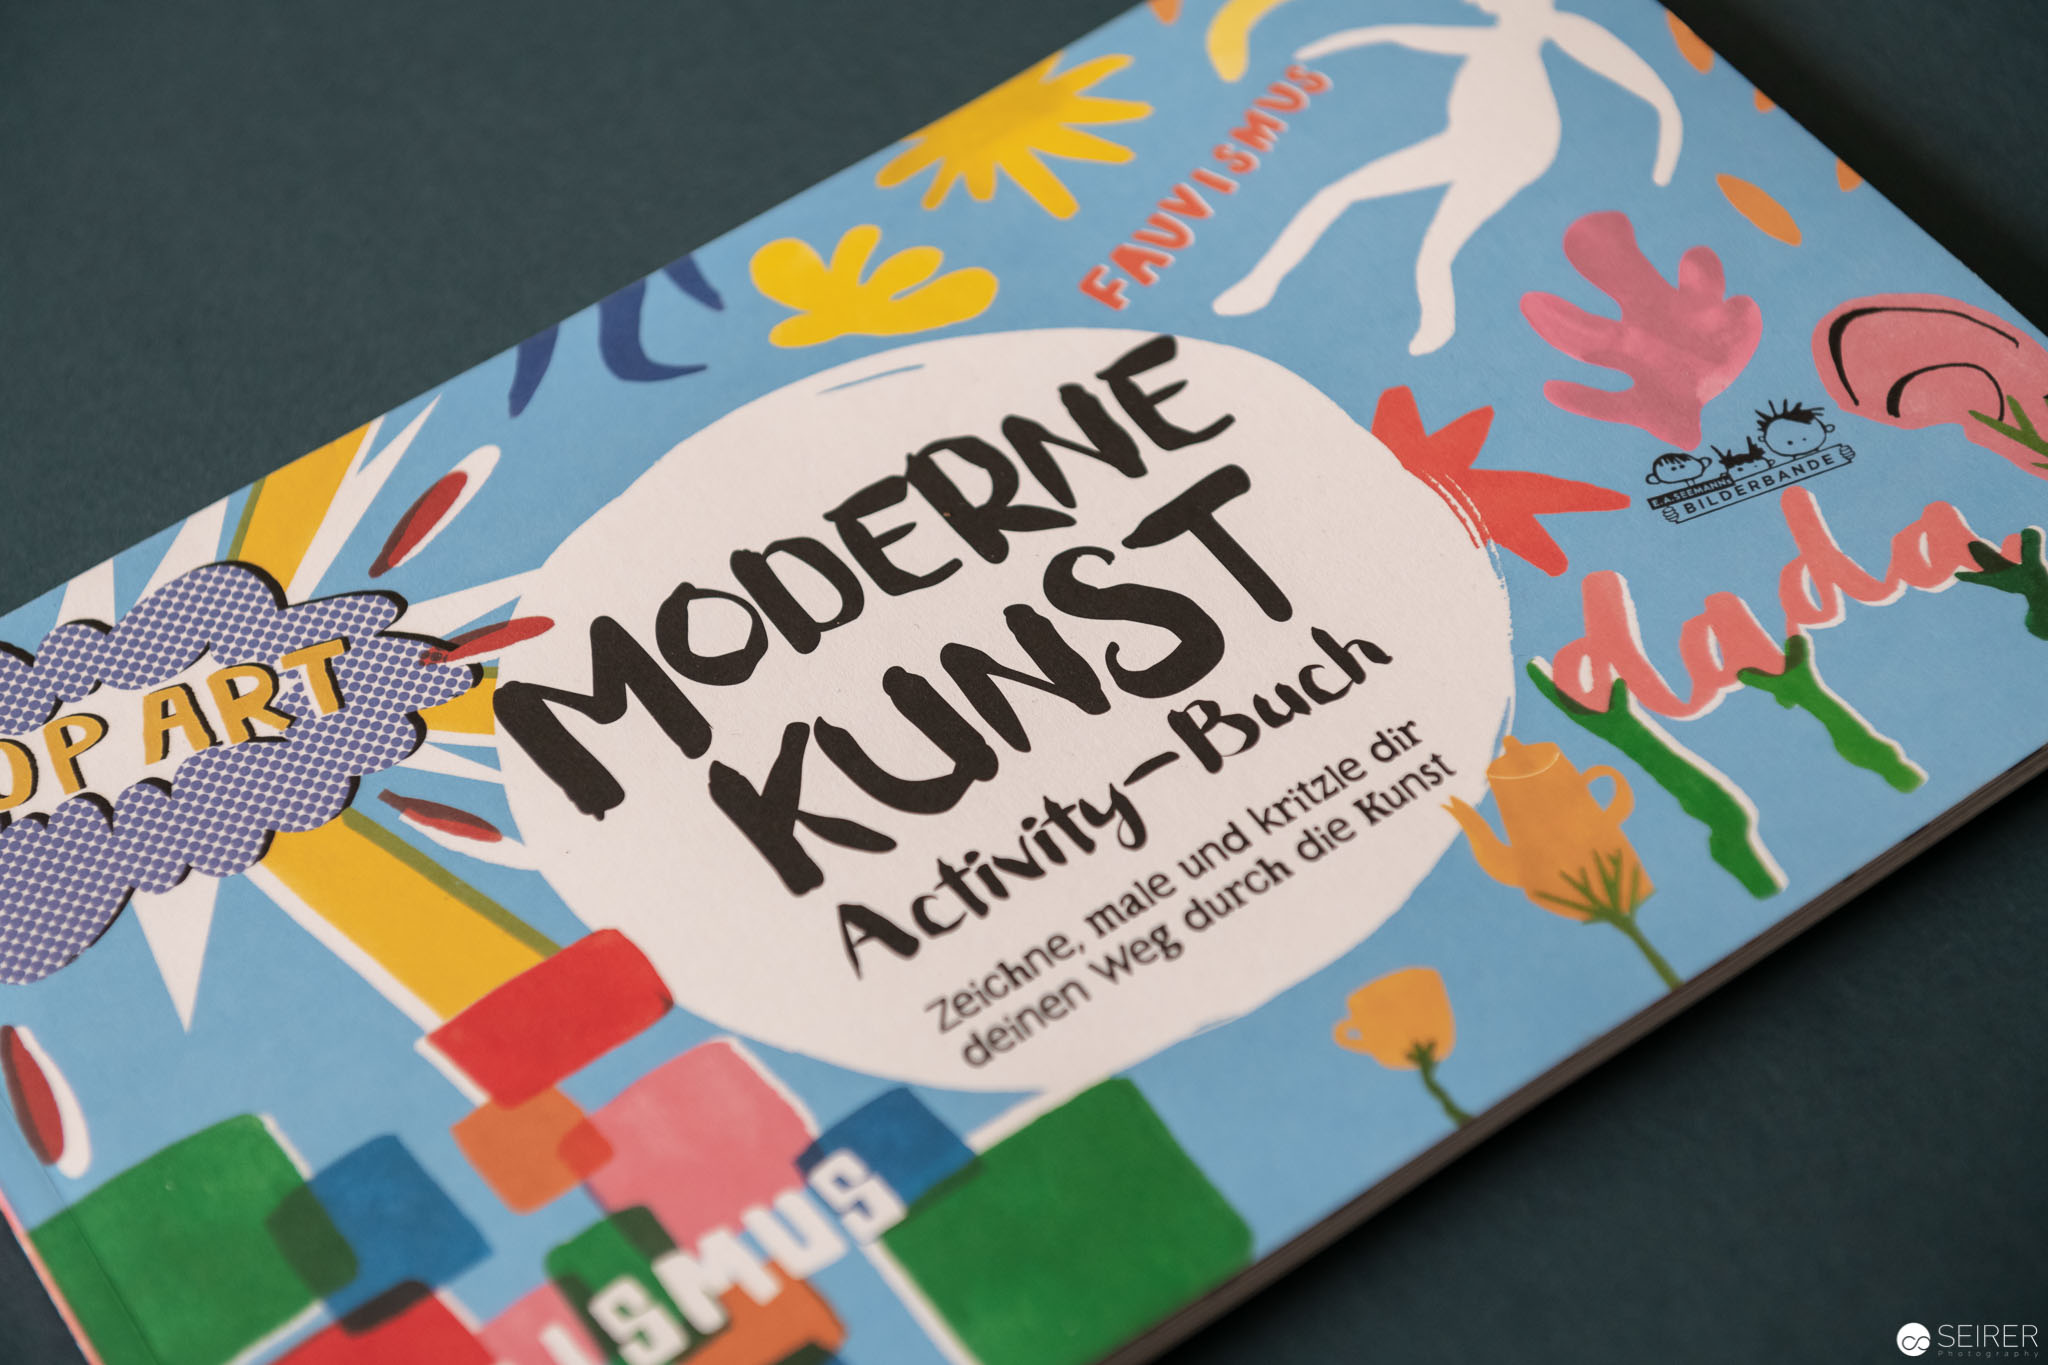 20181029 133605 Moderne Kunst Activity Buch 6643